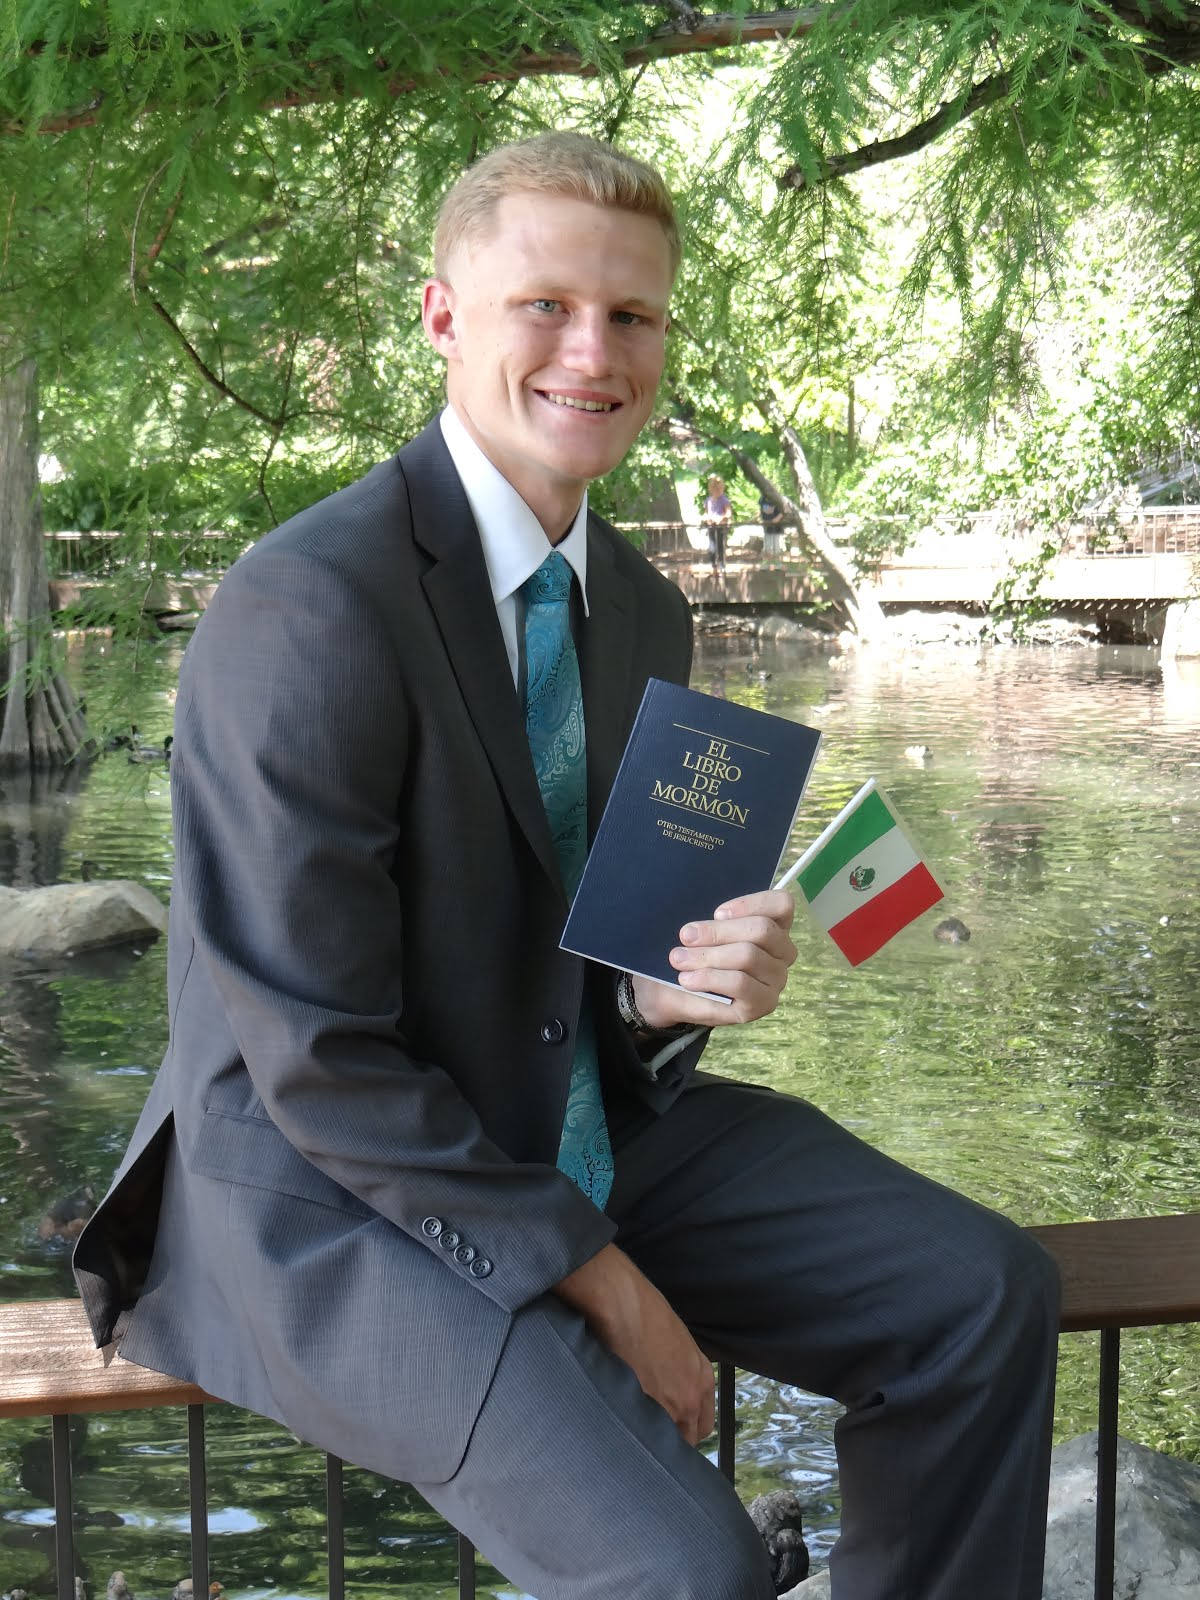 Elder Chad Robert Peterson